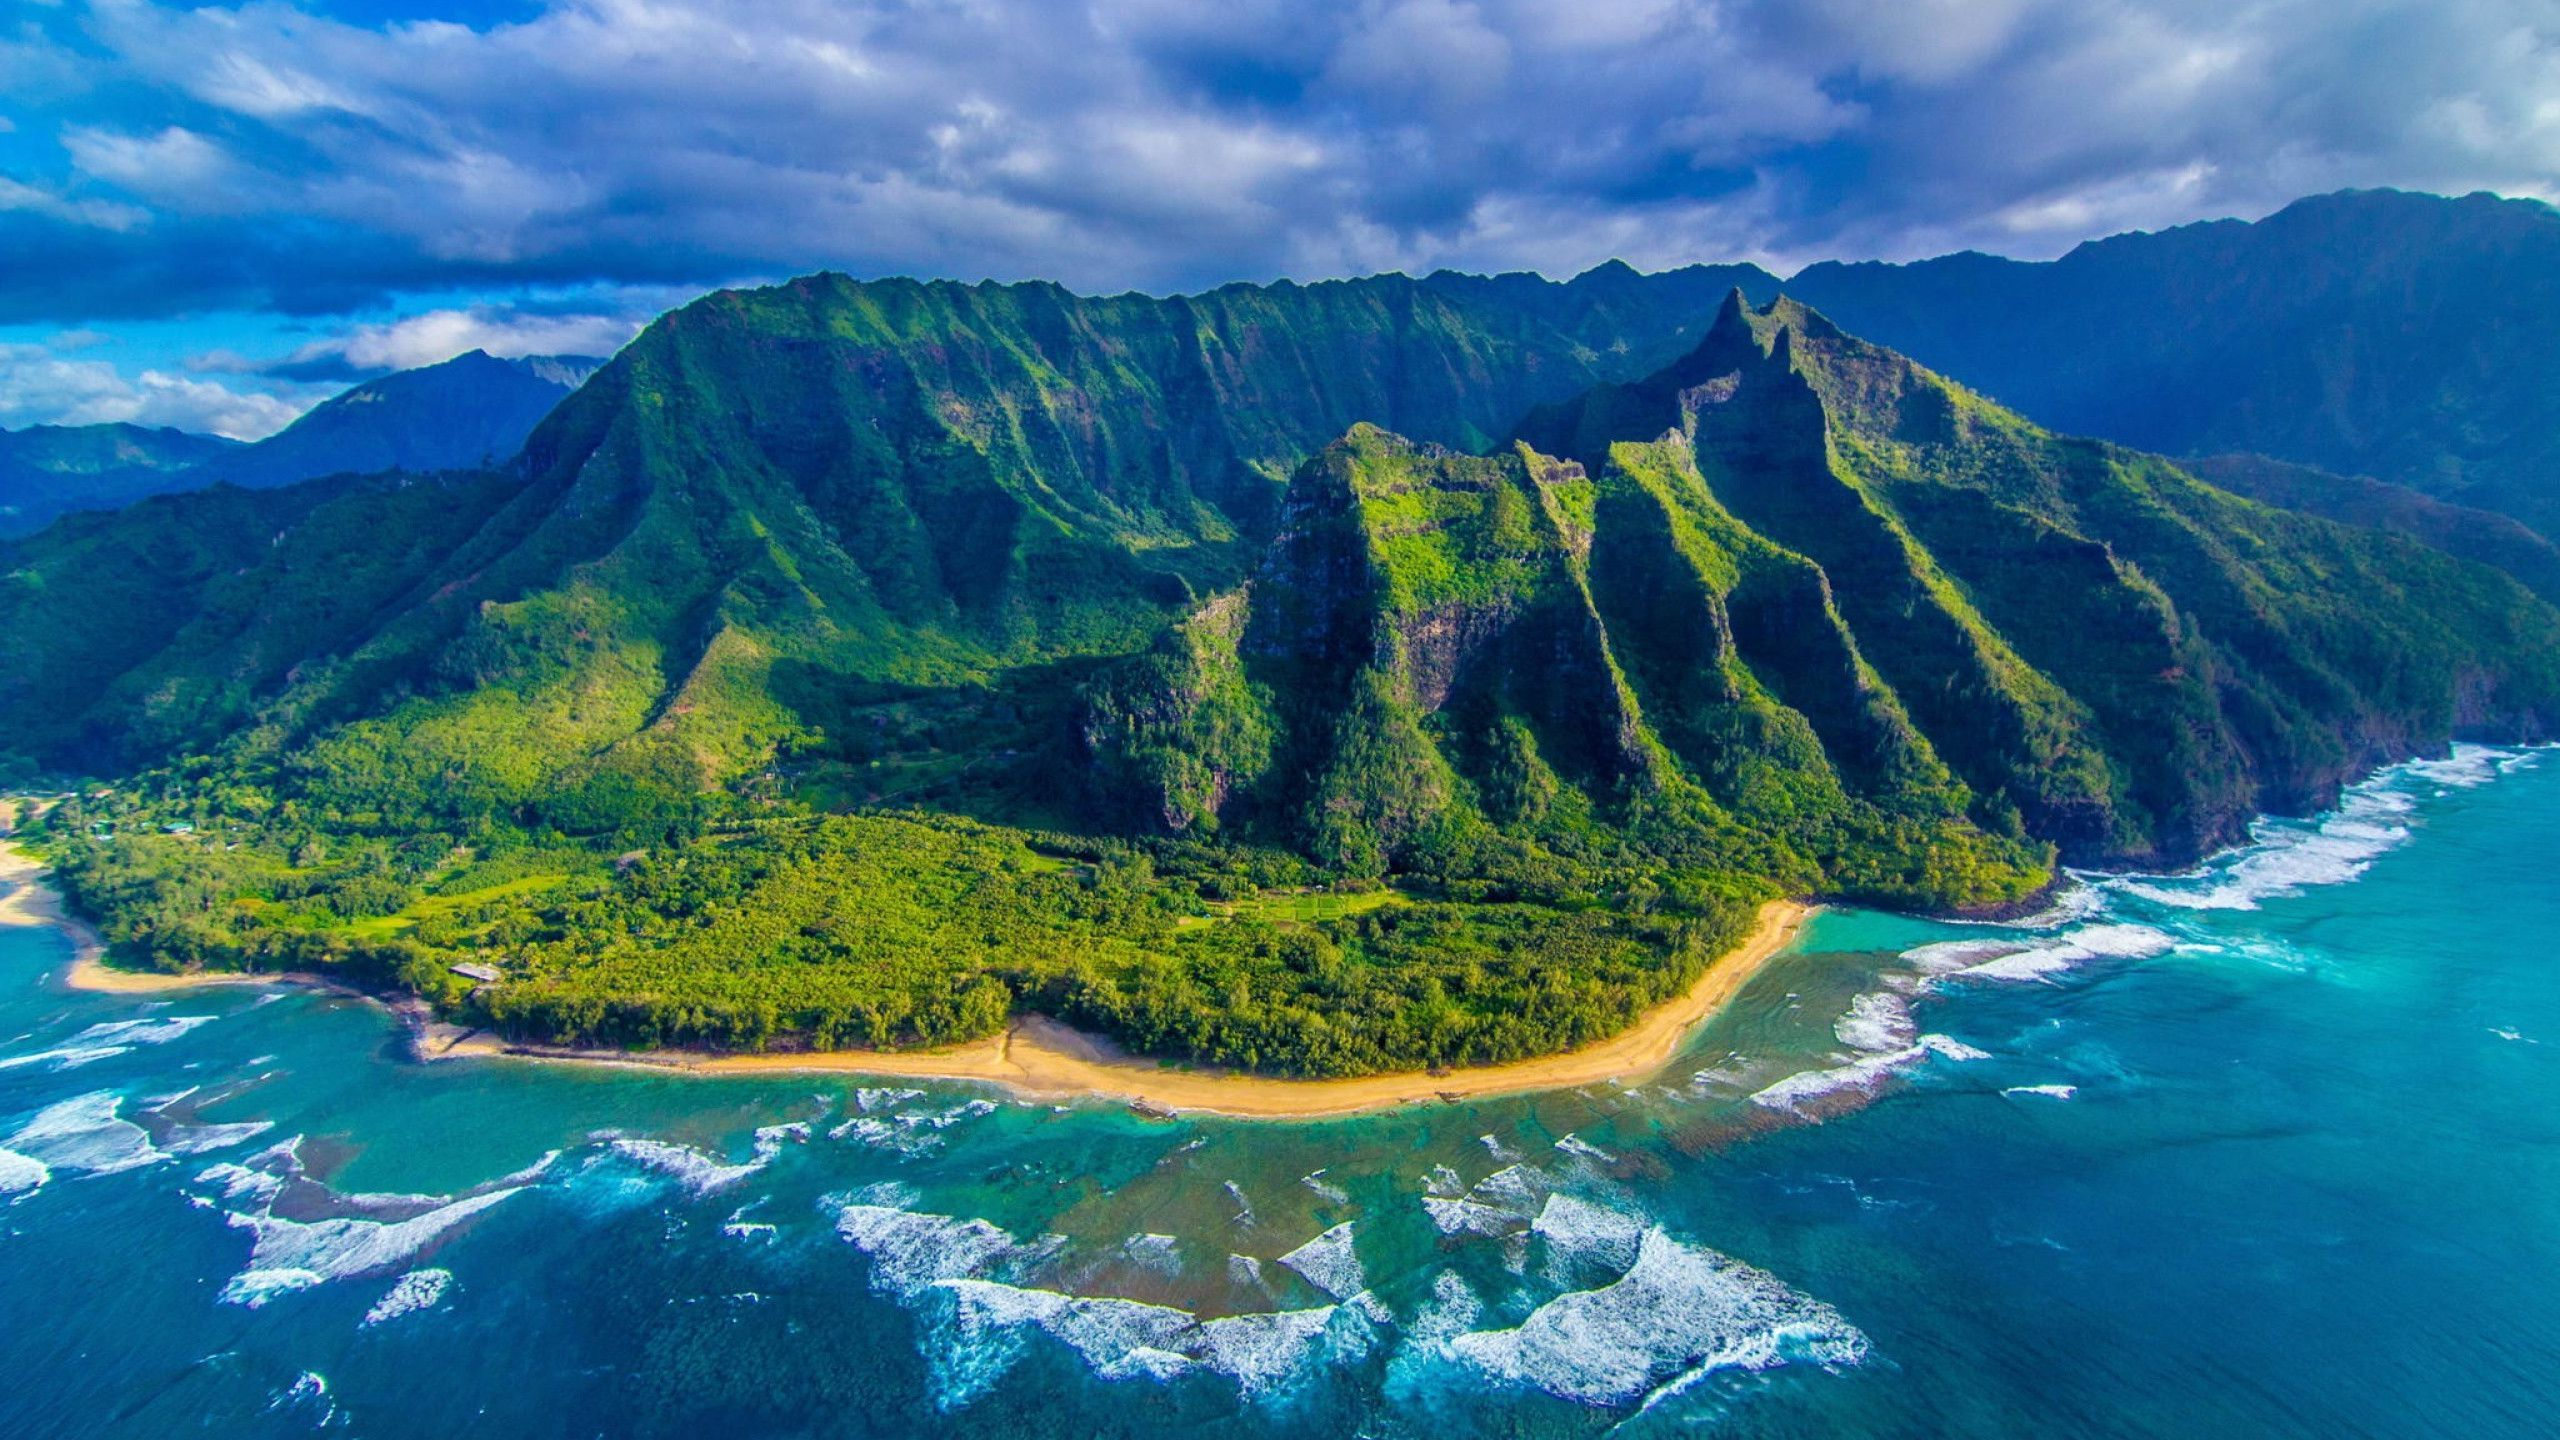 Hawaii Landscape Wallpapers Top Free Hawaii Landscape